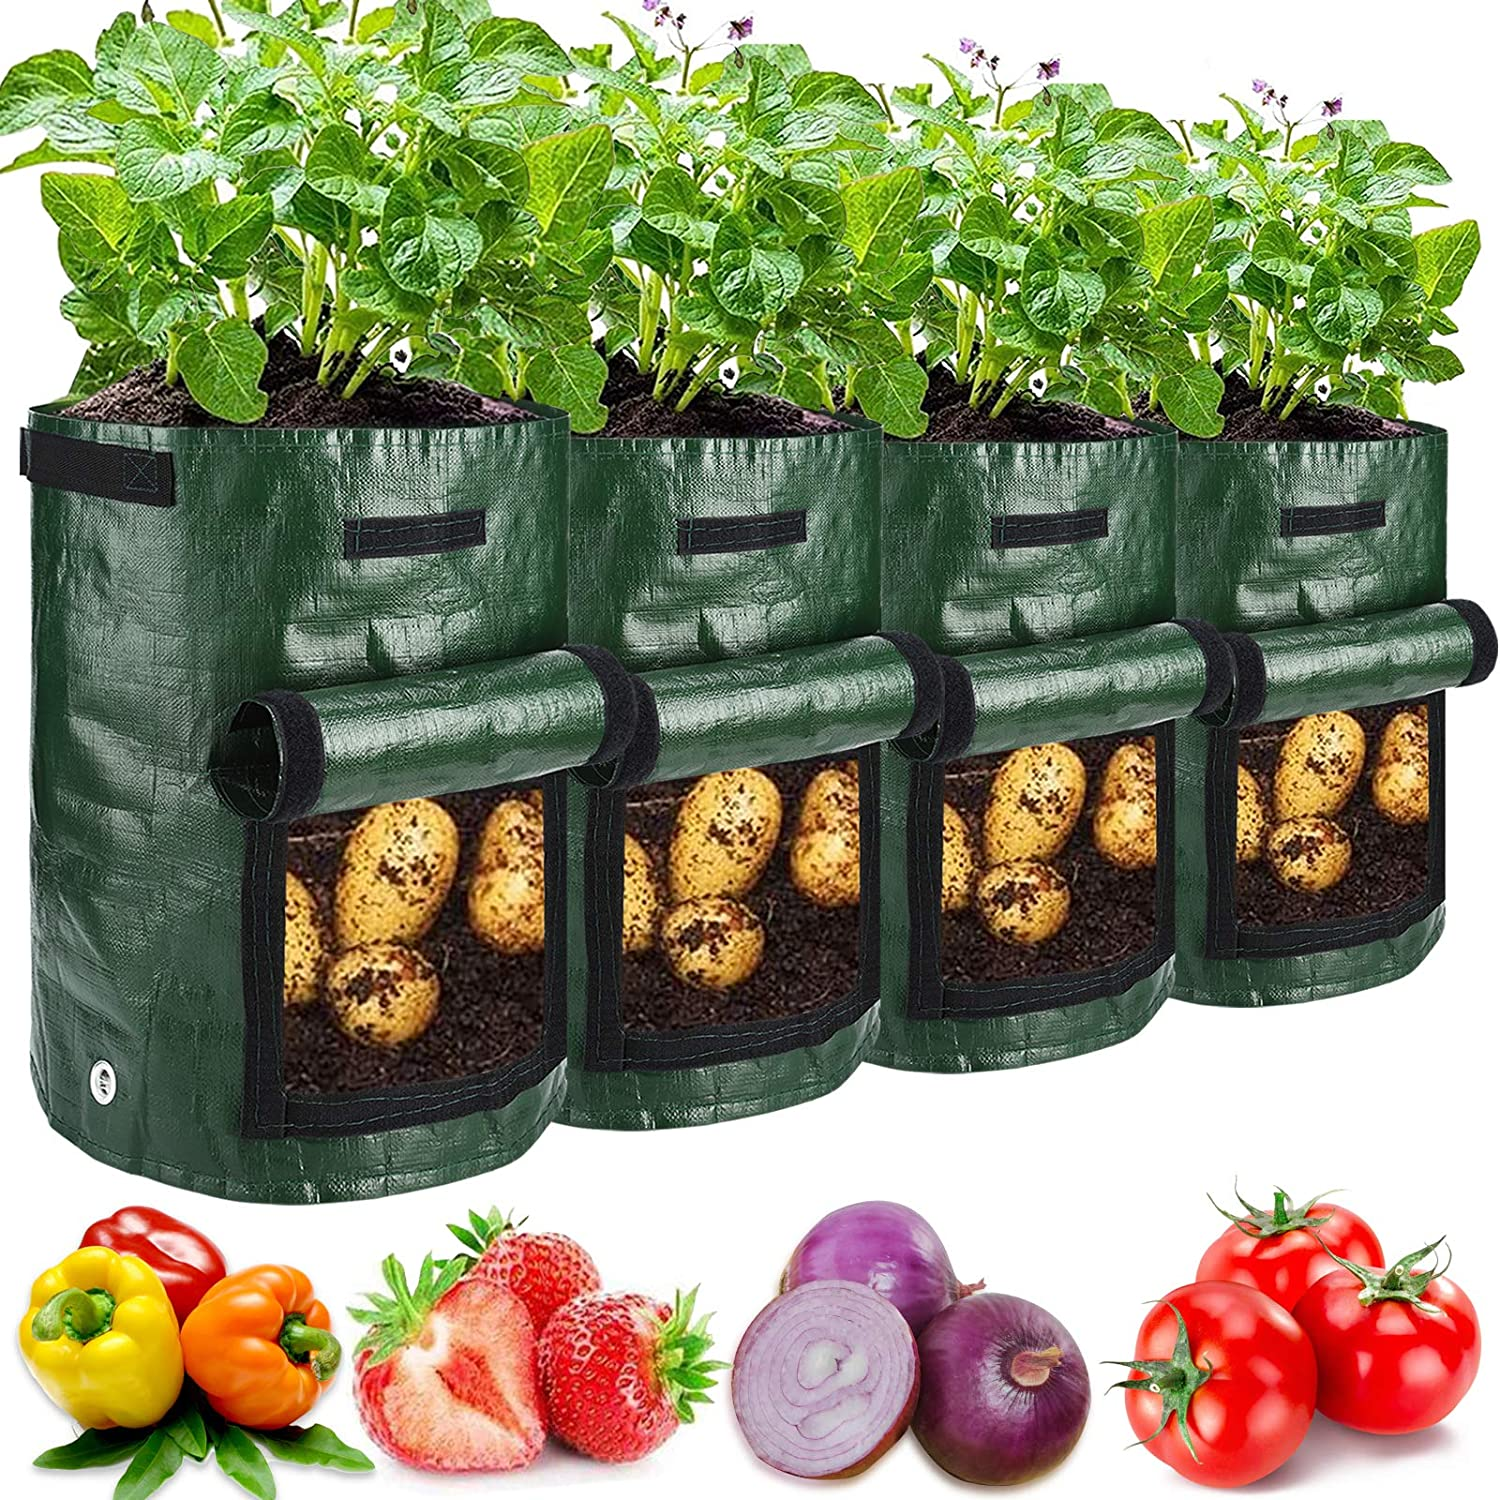 4 Pack 10 Gallon Garden Potato Grow Bags with Flap and Handles Aeration Fabric Planter Pots , Heavy Duty Potato Planters Garden Planting Bags for Onion, Fruits, Tomato, Carrot (Green)